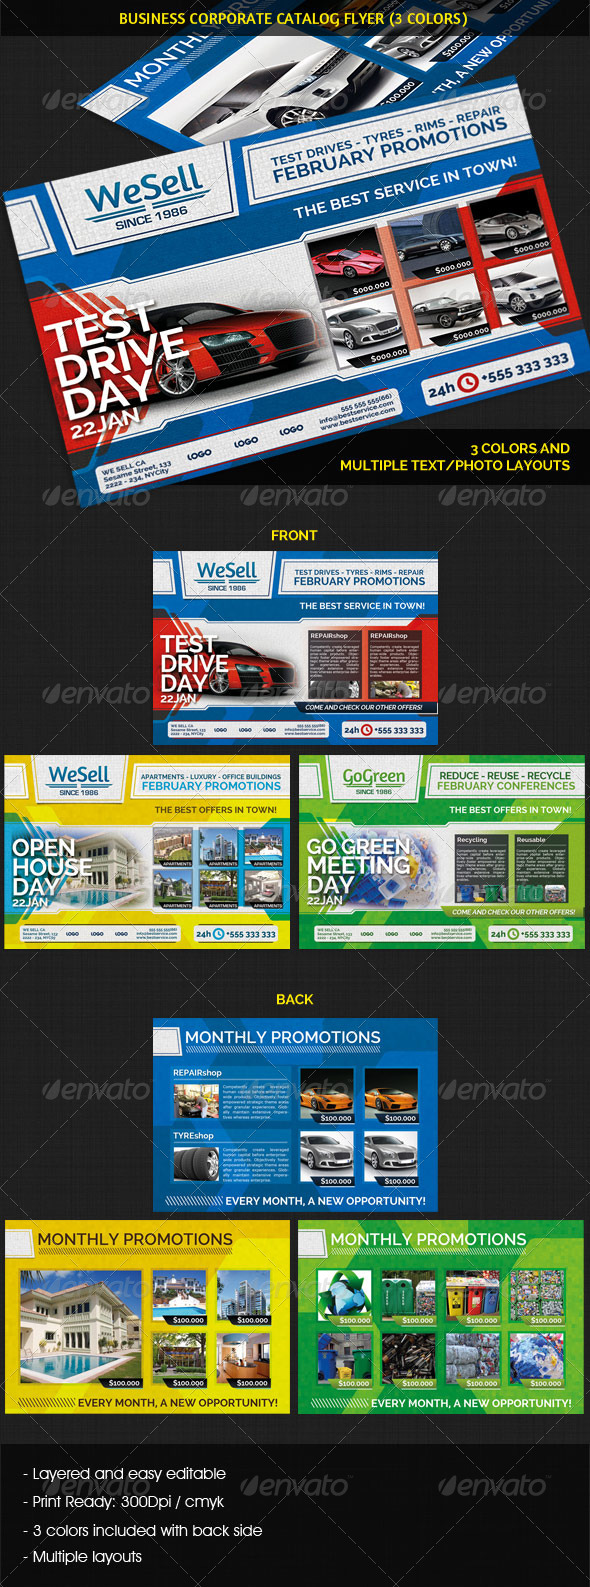 Business Corporate Catalog Flyer - Commerce Flyers